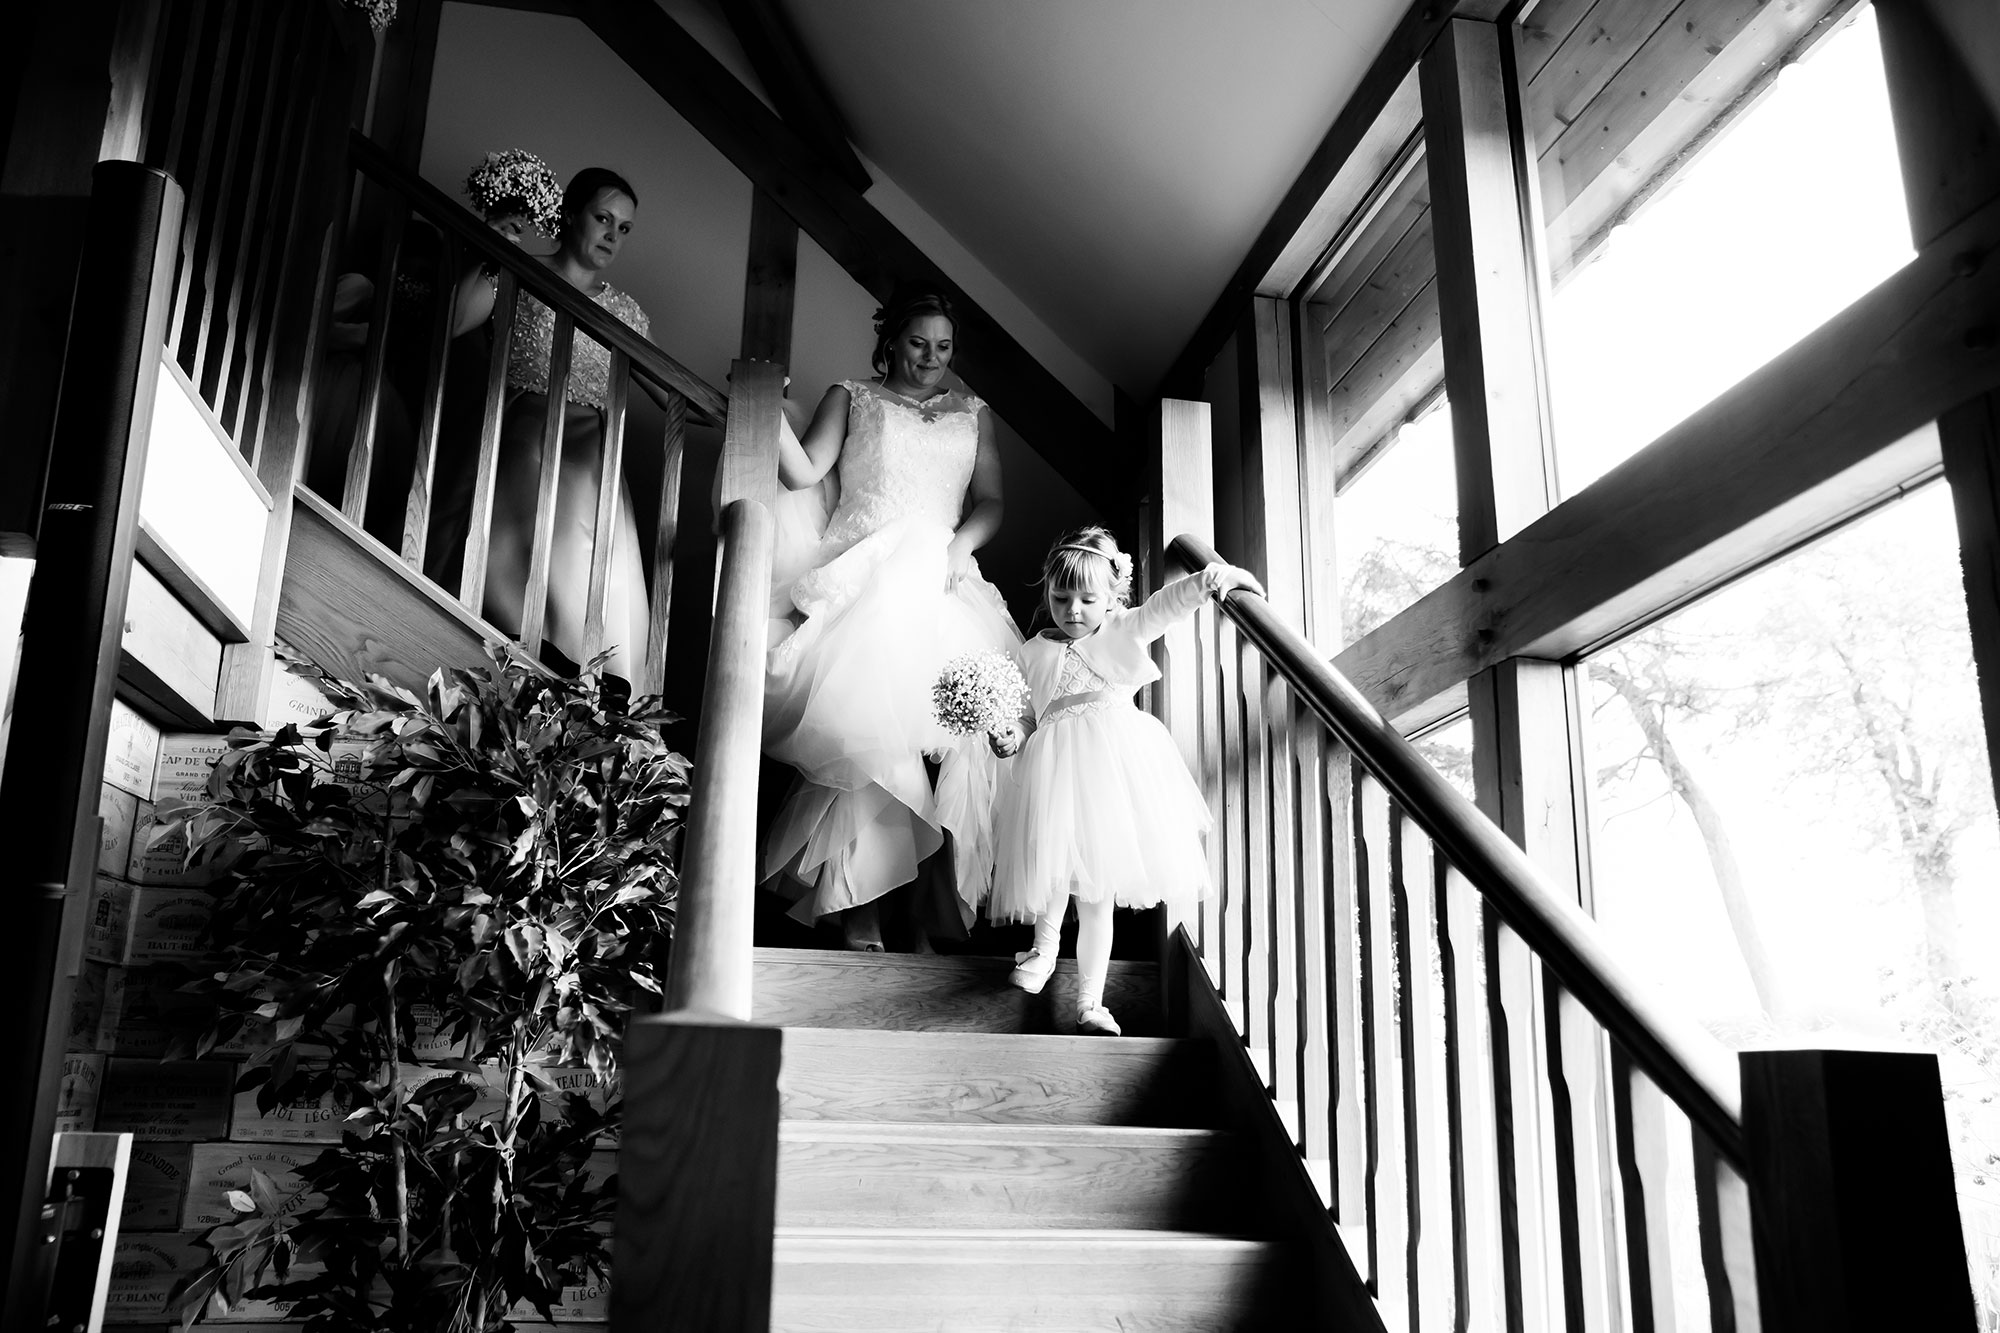 bride-to-be Jane and her bridesmaids walking down the staircase in the dining hall at Tower Hill Barns North Wales